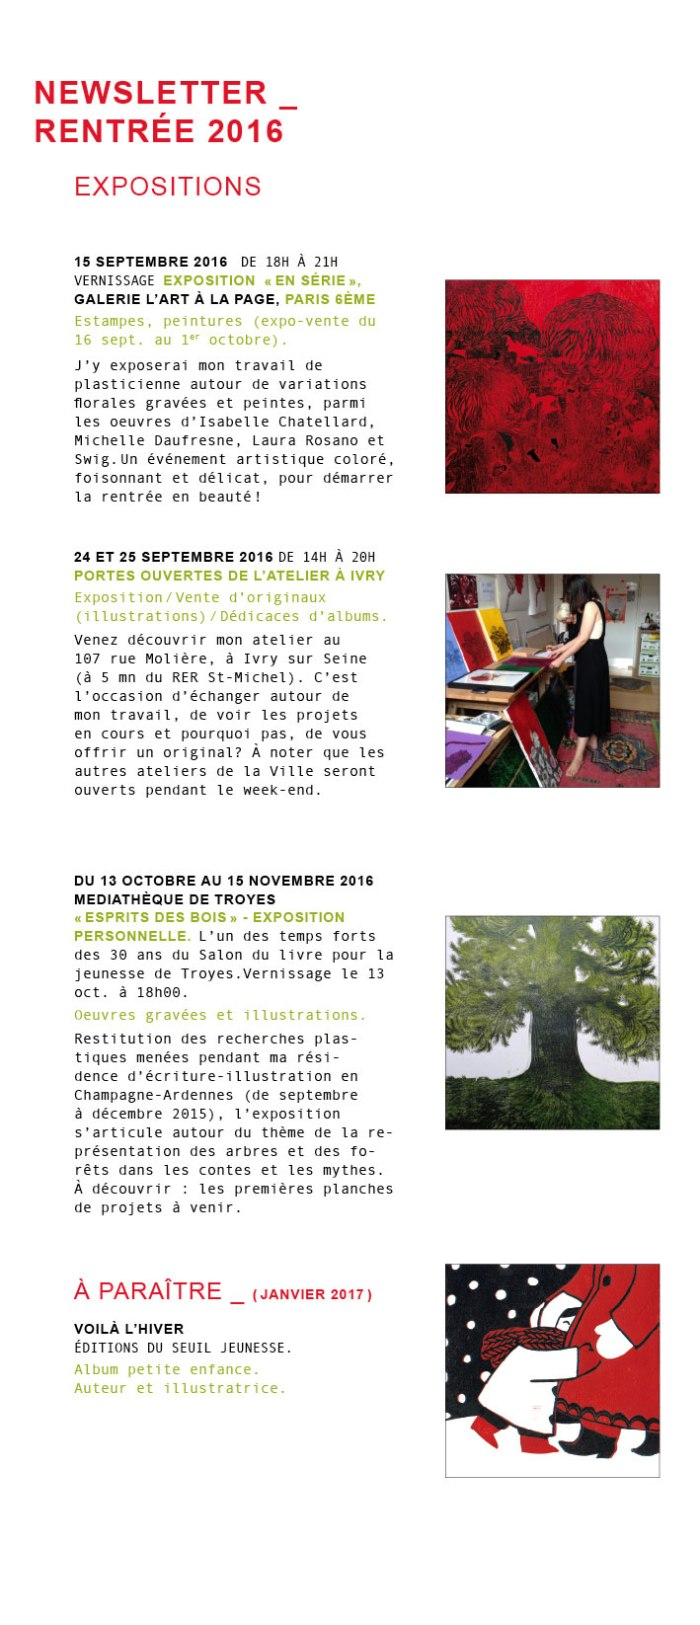 newsletter_rentree16_web